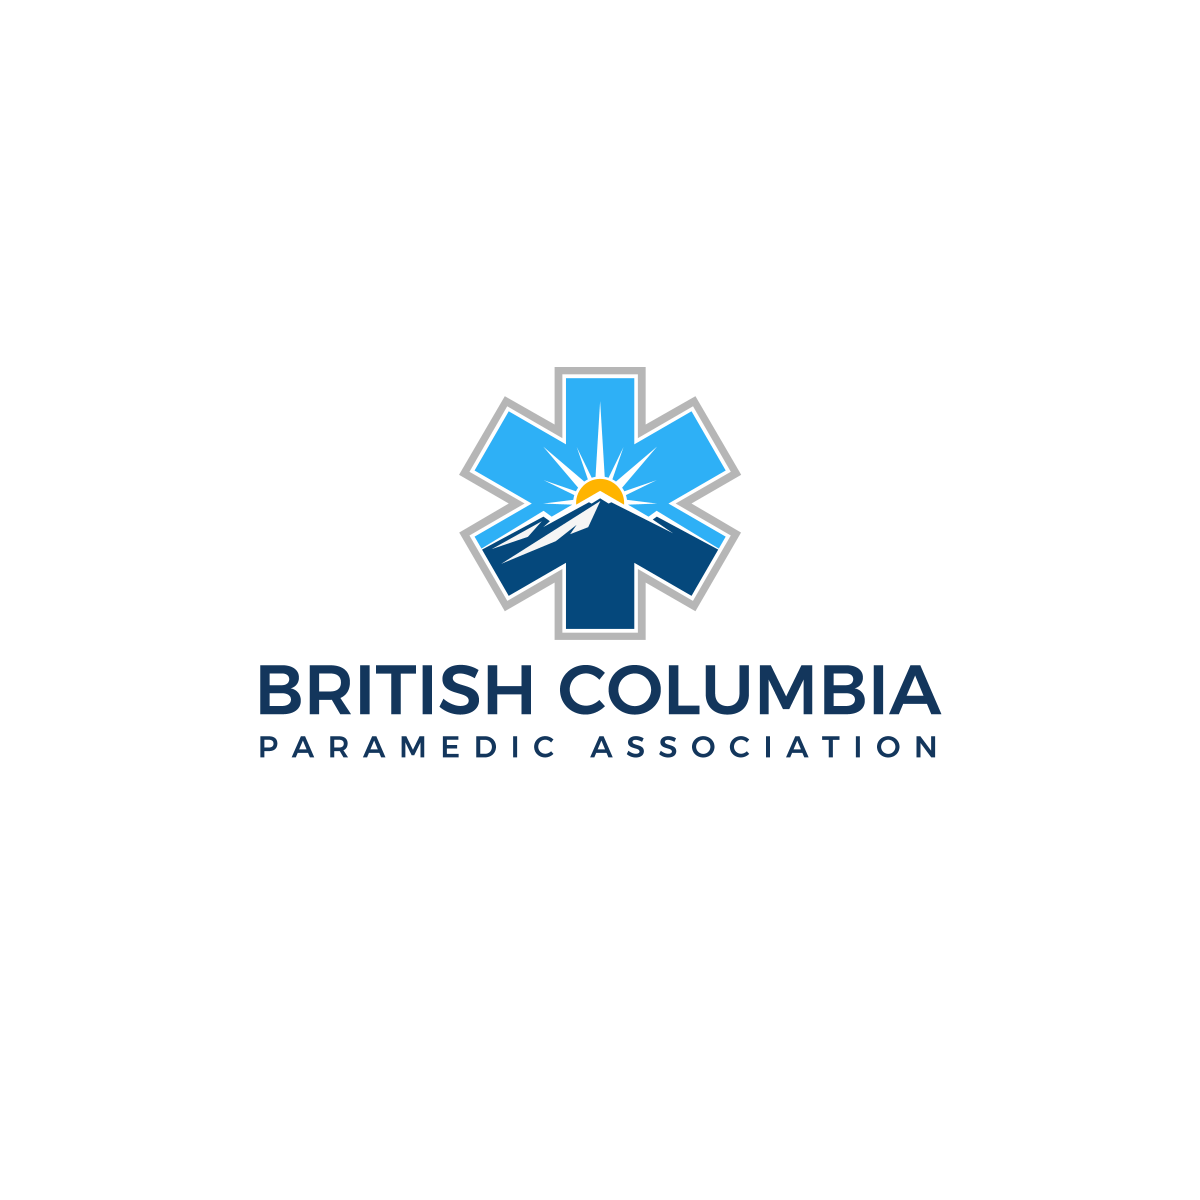 PRESS RELEASE – British Columbia Paramedic Association Supports Auditor General's Report on BCEHS